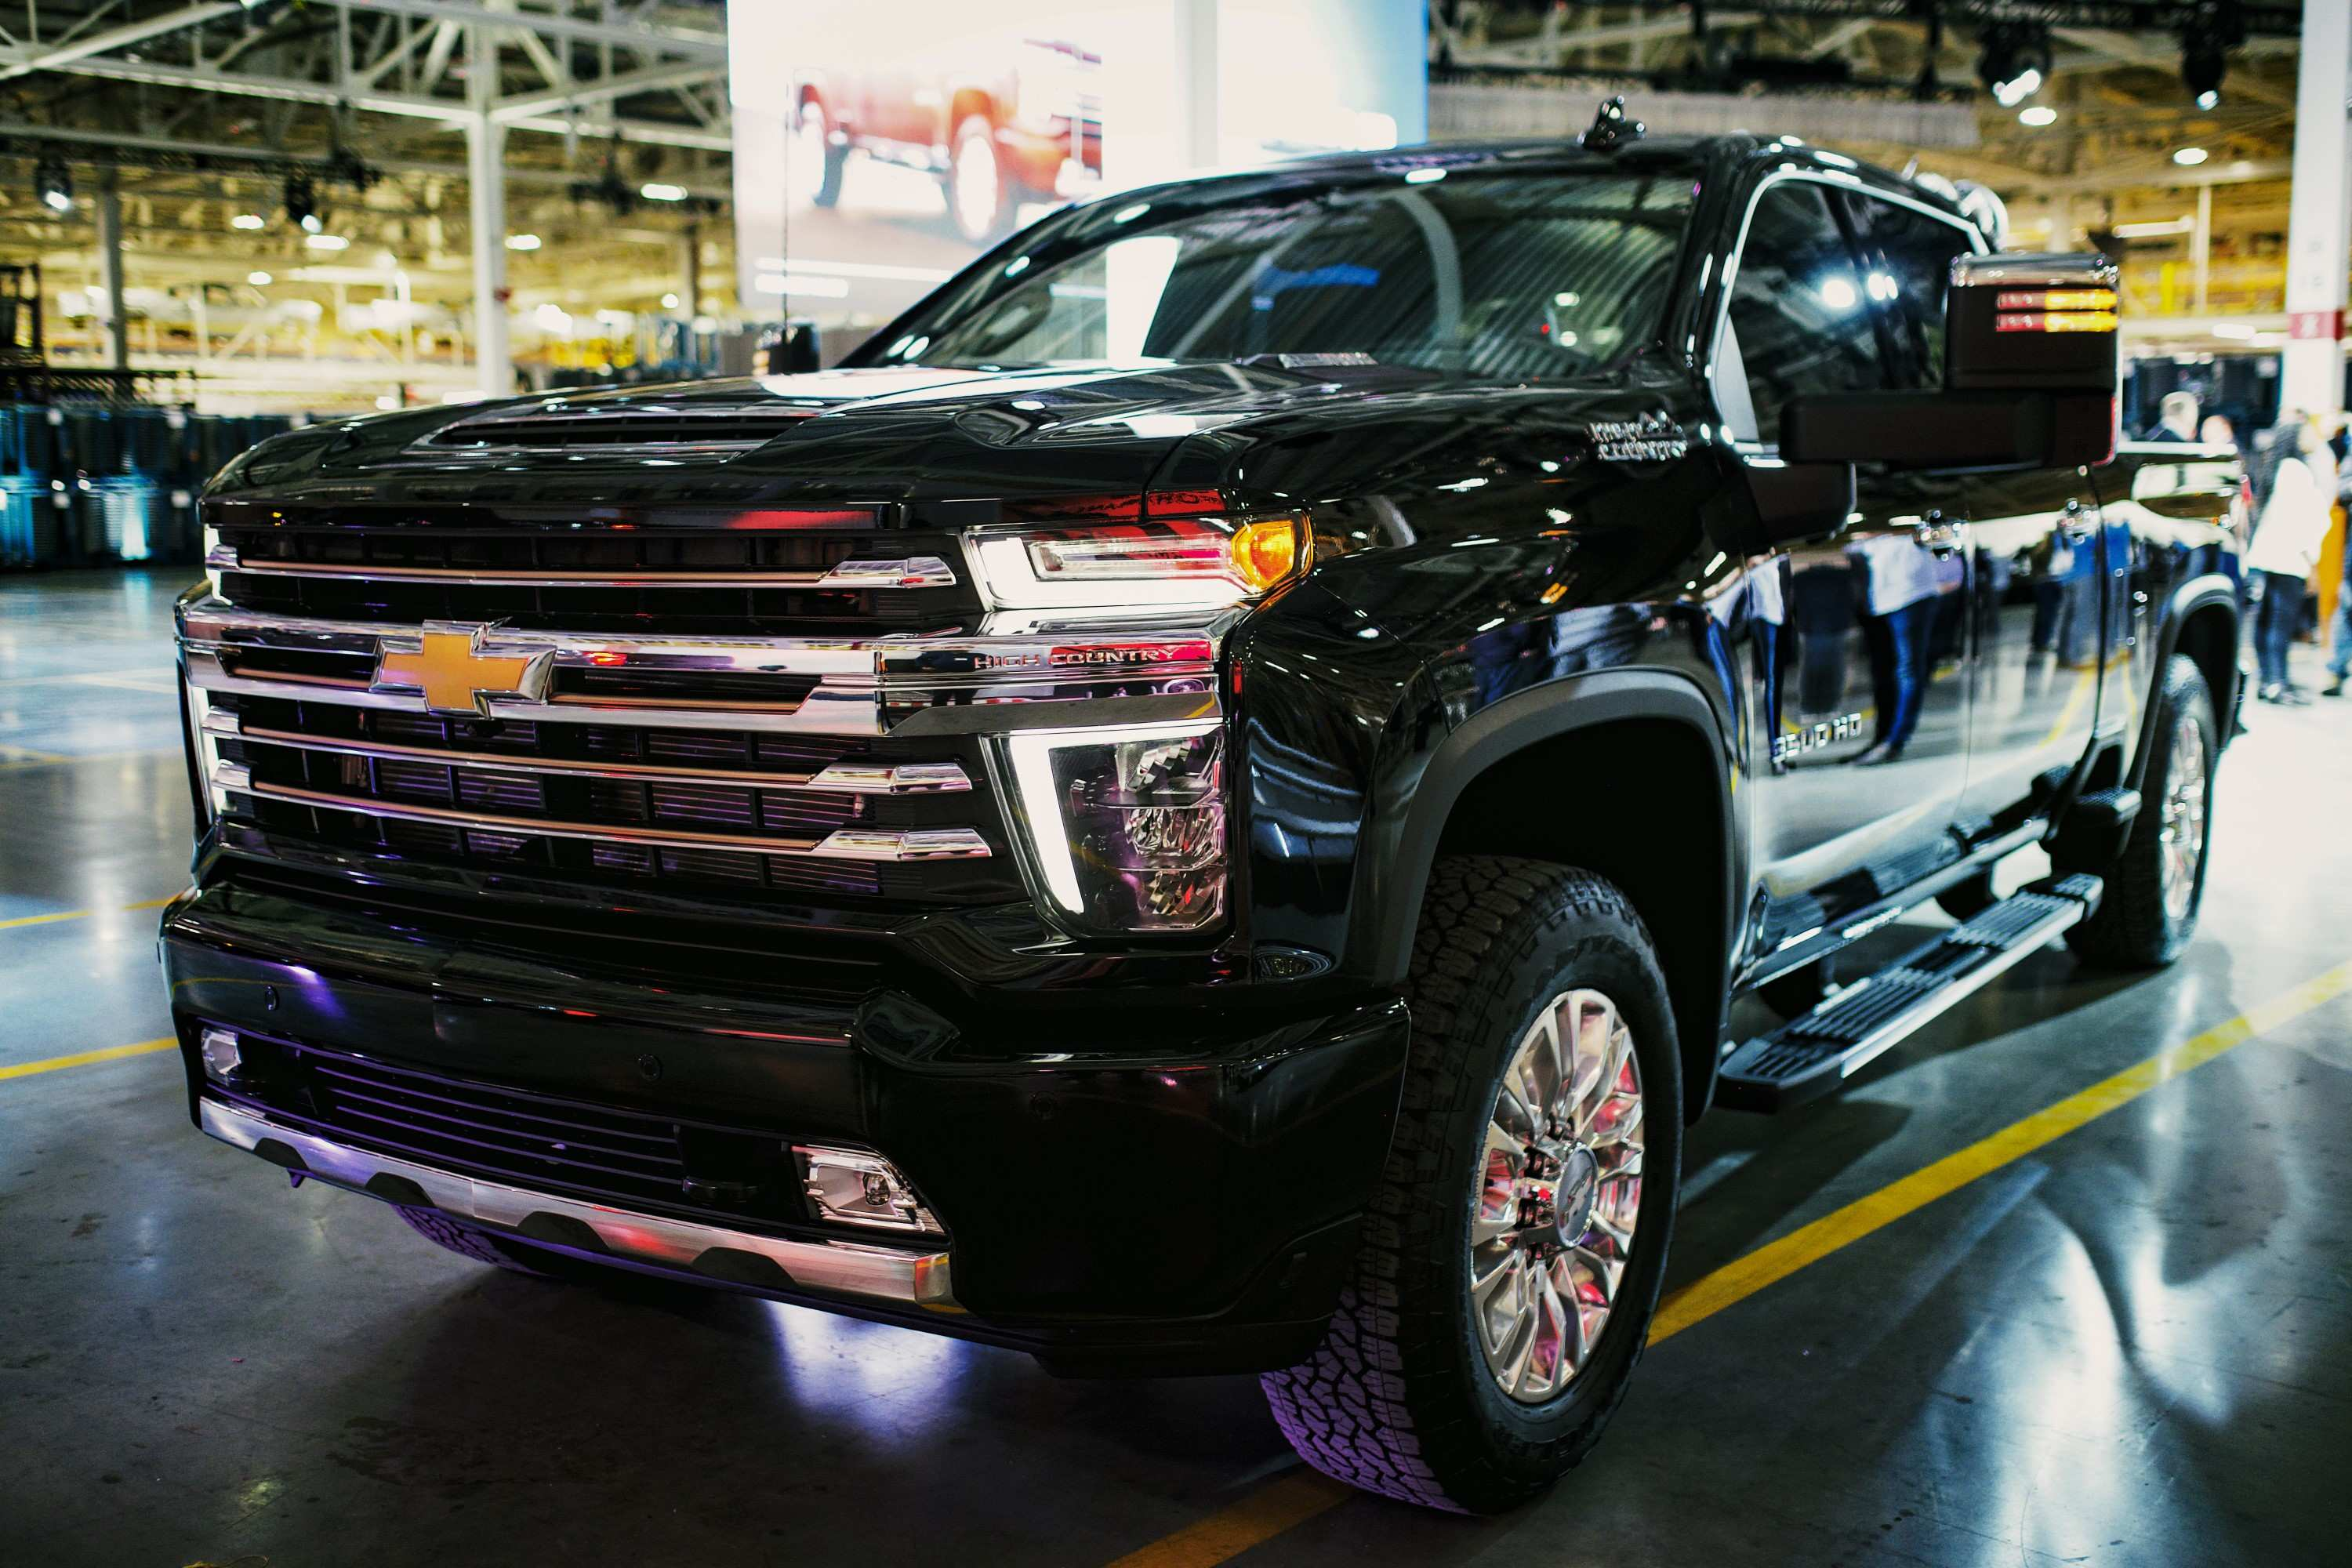 84 The Best 2020 Silverado Hd Concept And Review